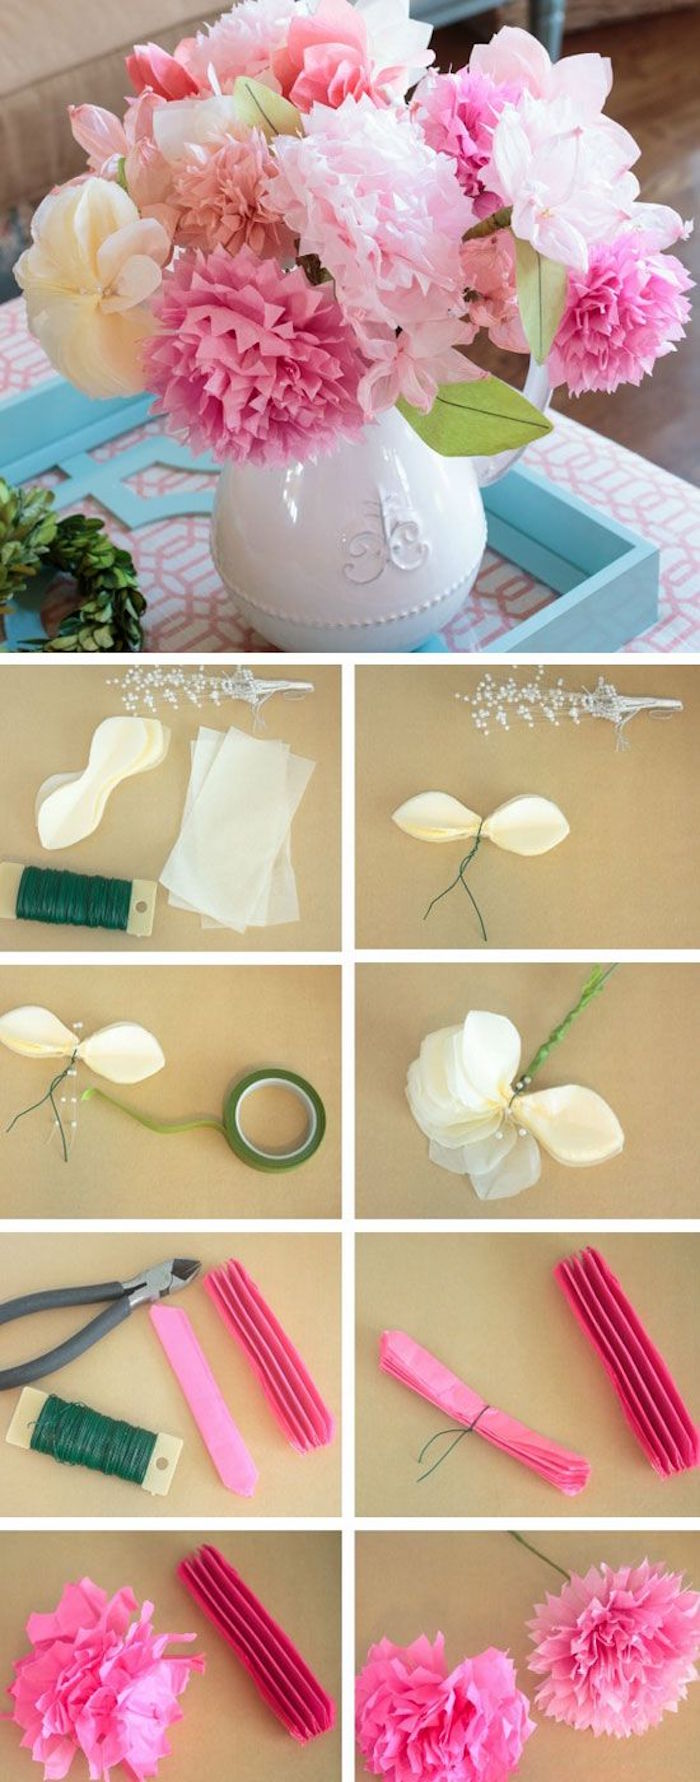 DIY decoration ideas for spring mood